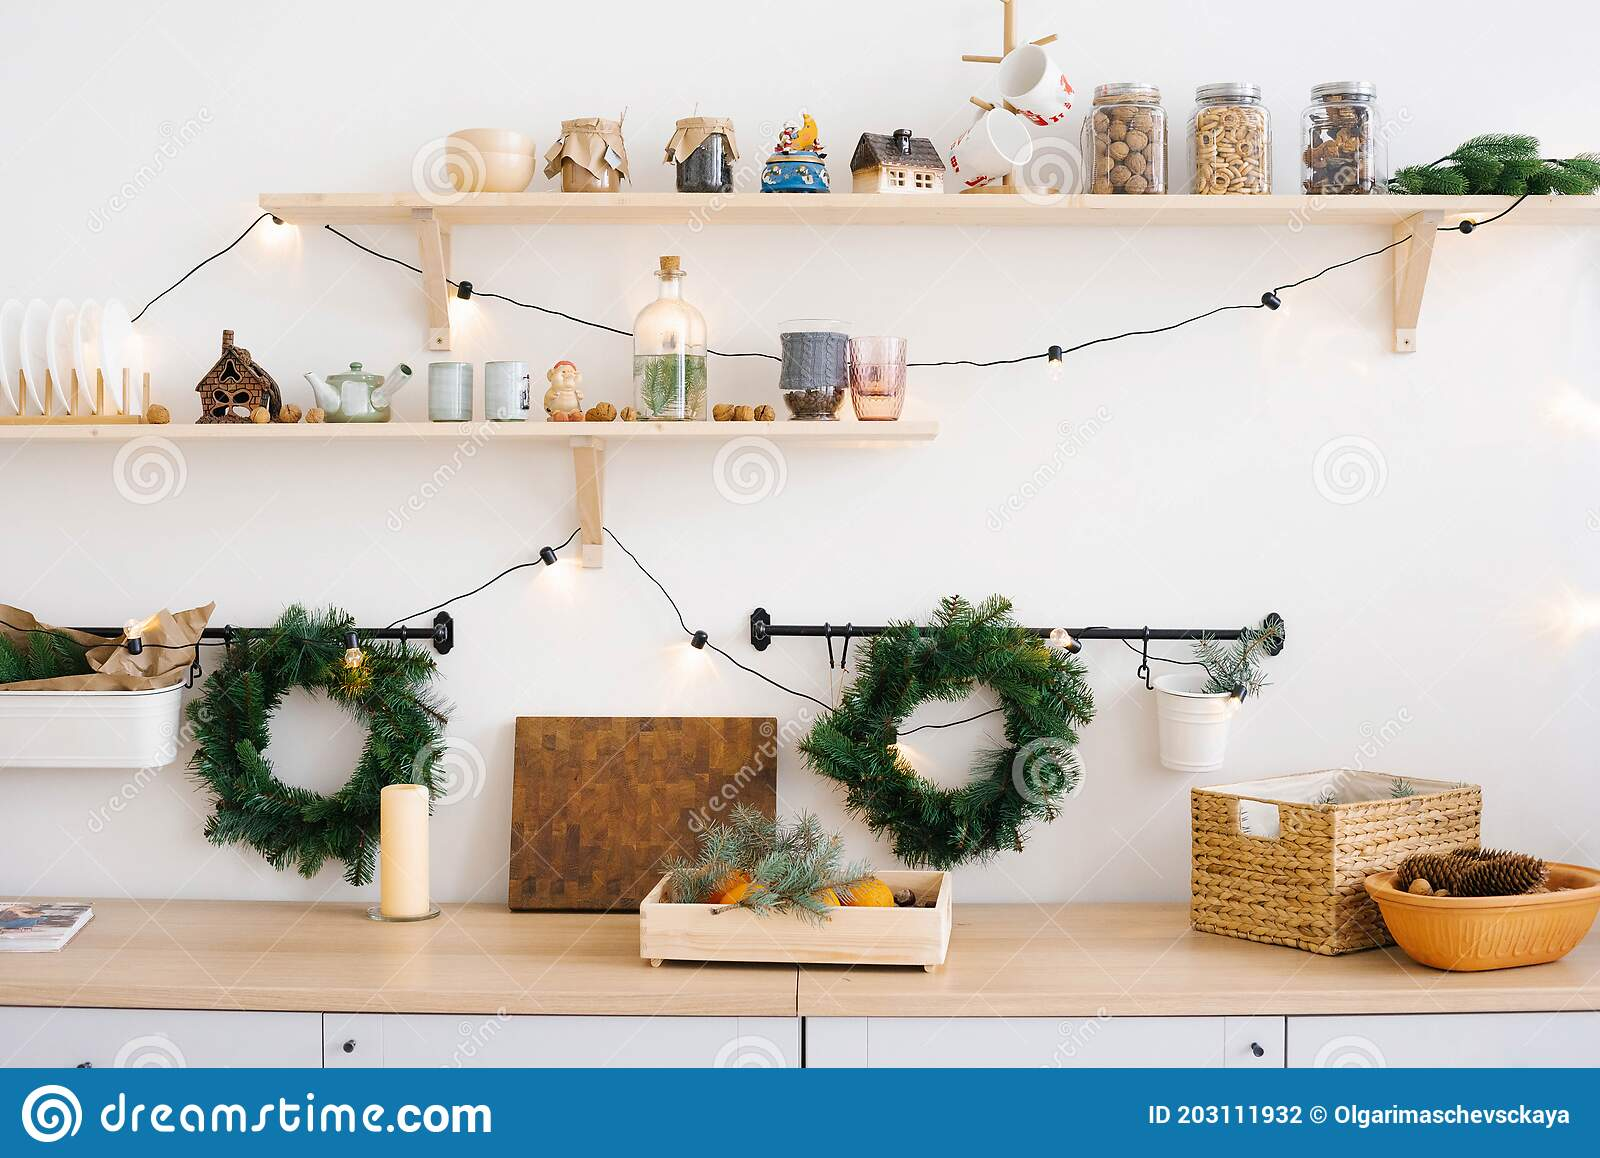 Christmas Kitchen Decor The Rustic Kitchen For Christmas Details Of Scandinavian Cuisine In White Stock Photo Image Of Furniture Frog 203111932